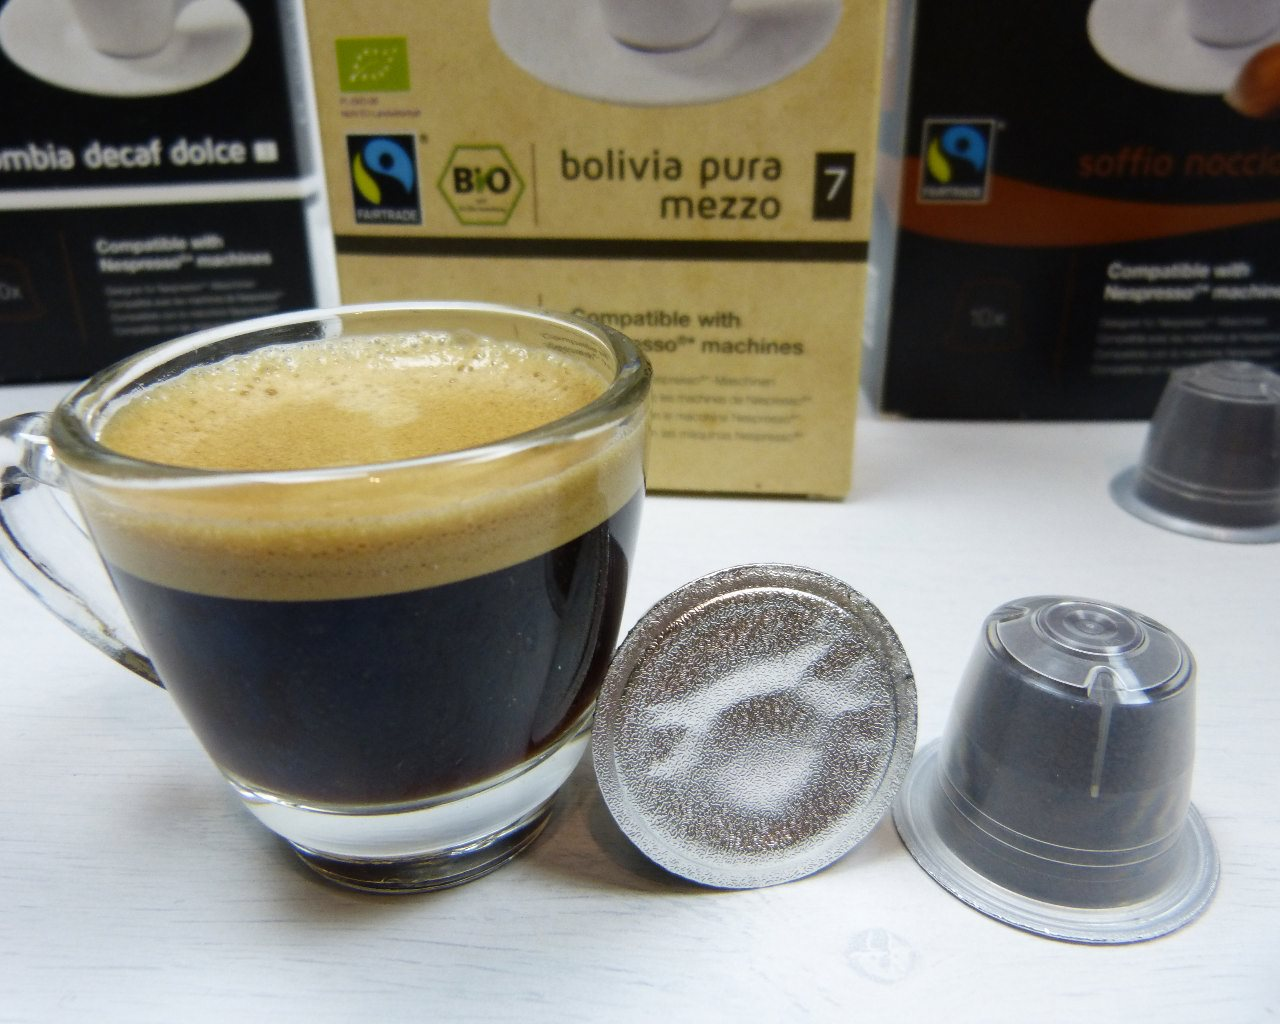 gourmesso kaffeekapseln im test kompatibel mit nespresso022 kapsel. Black Bedroom Furniture Sets. Home Design Ideas